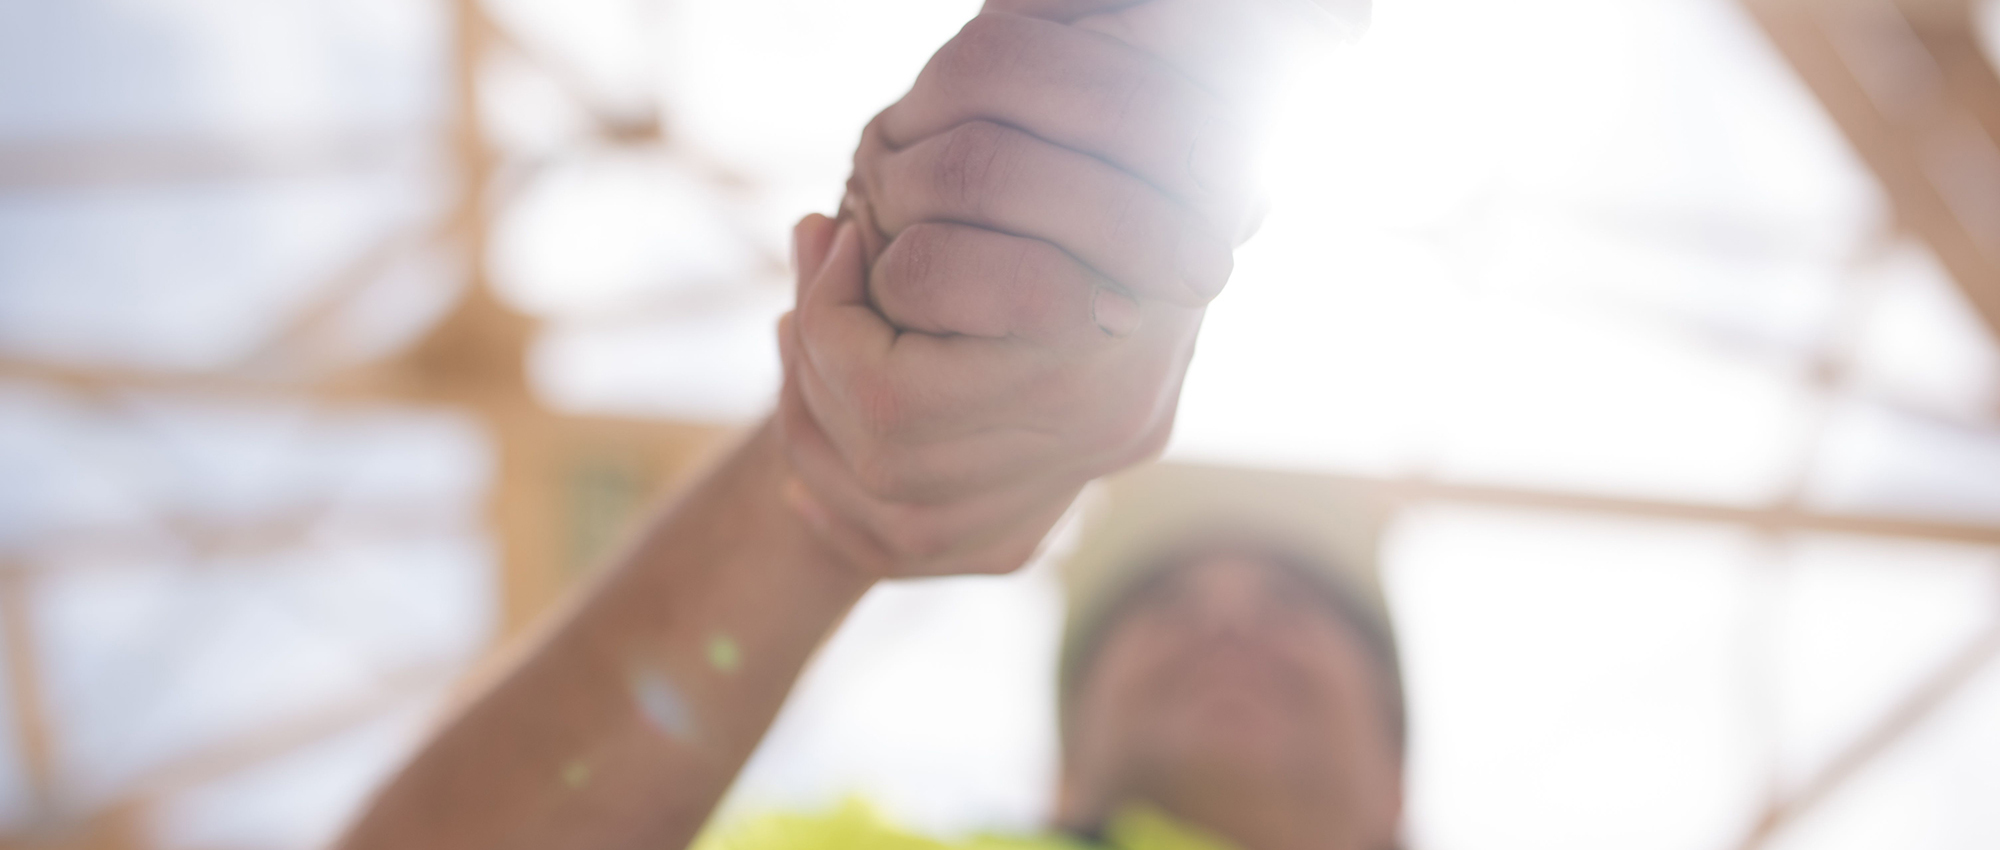 Two construction workers shaking hands on a residential construction site